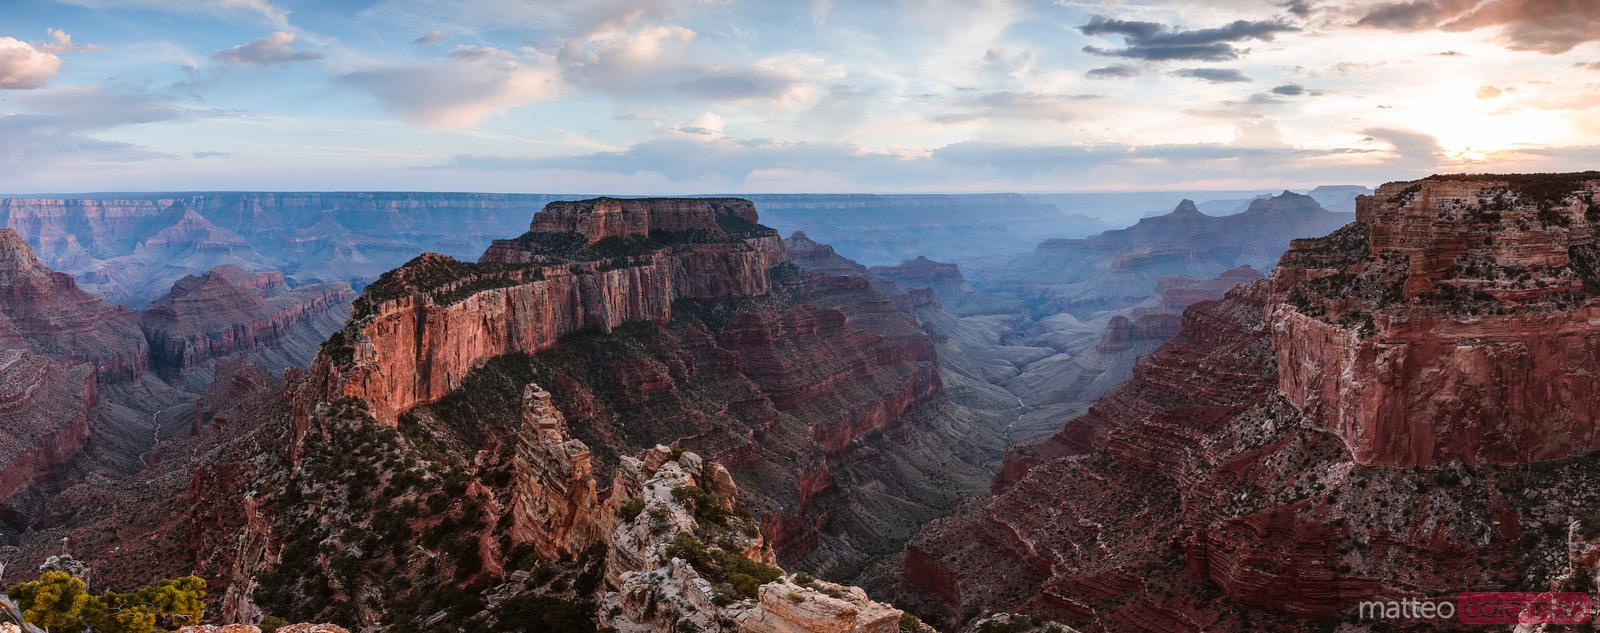 Panoramic sunset, Grand Canyon National Park, USA